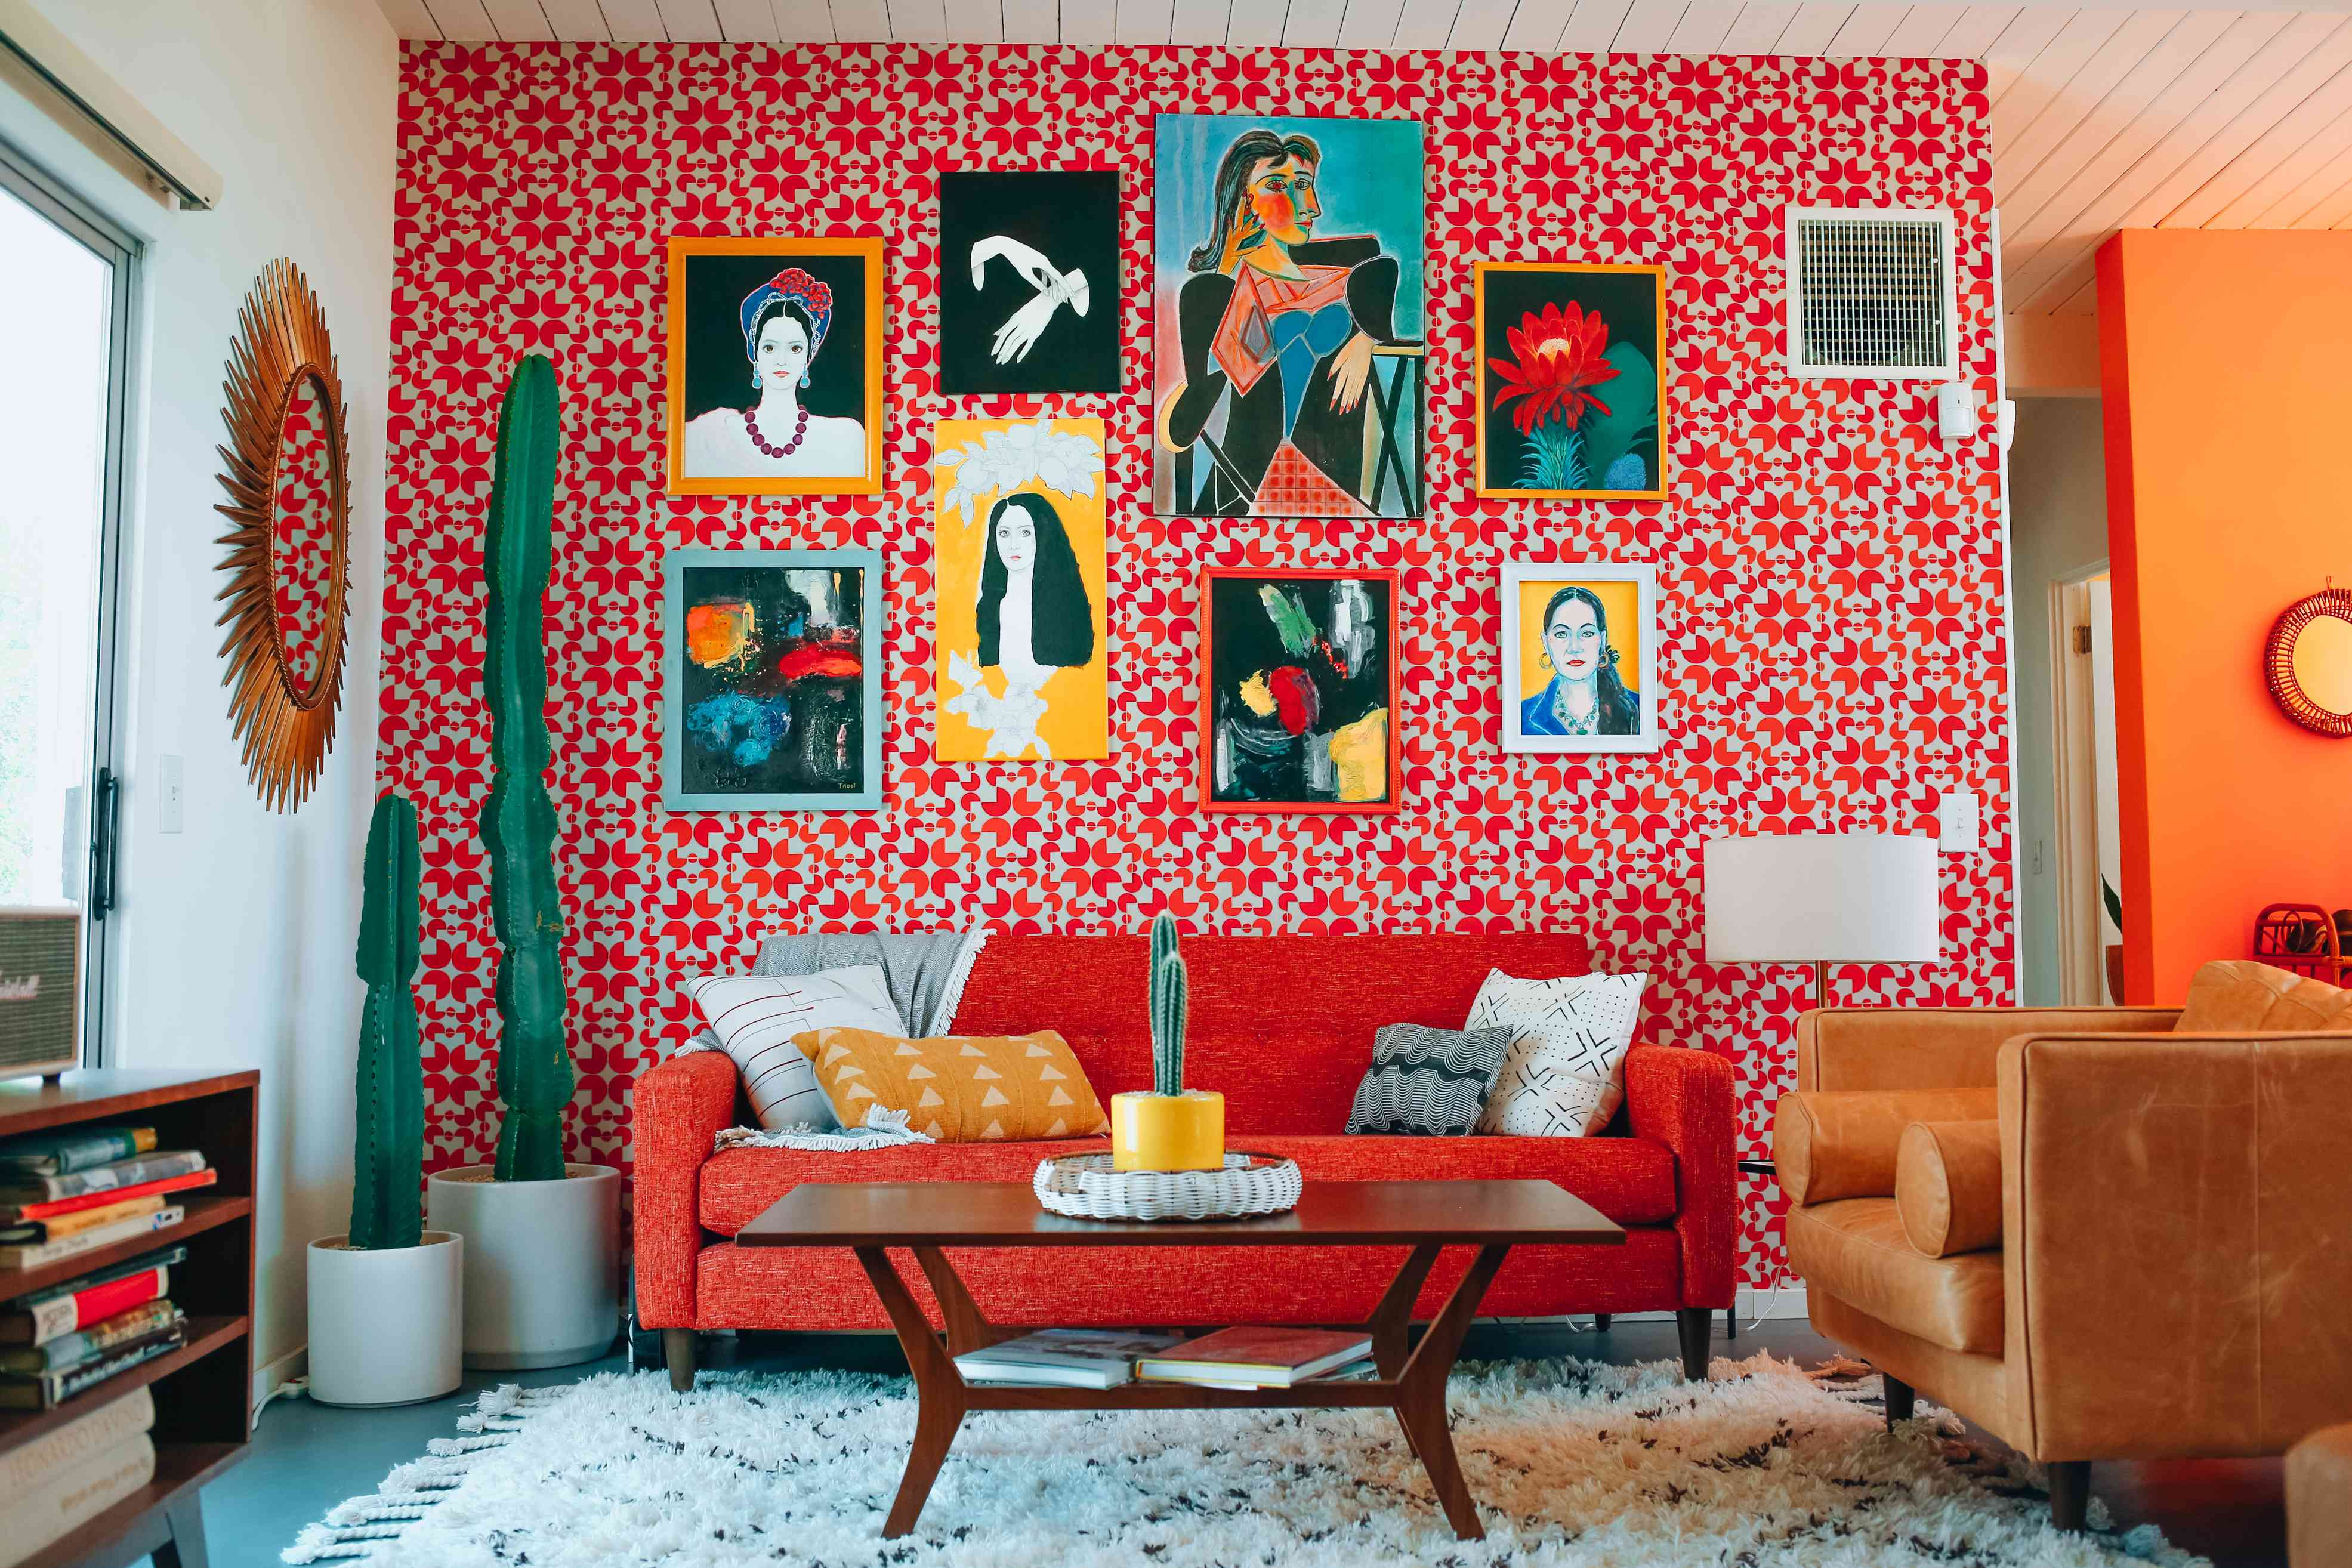 Bright red wallpaper with artwork in a living room